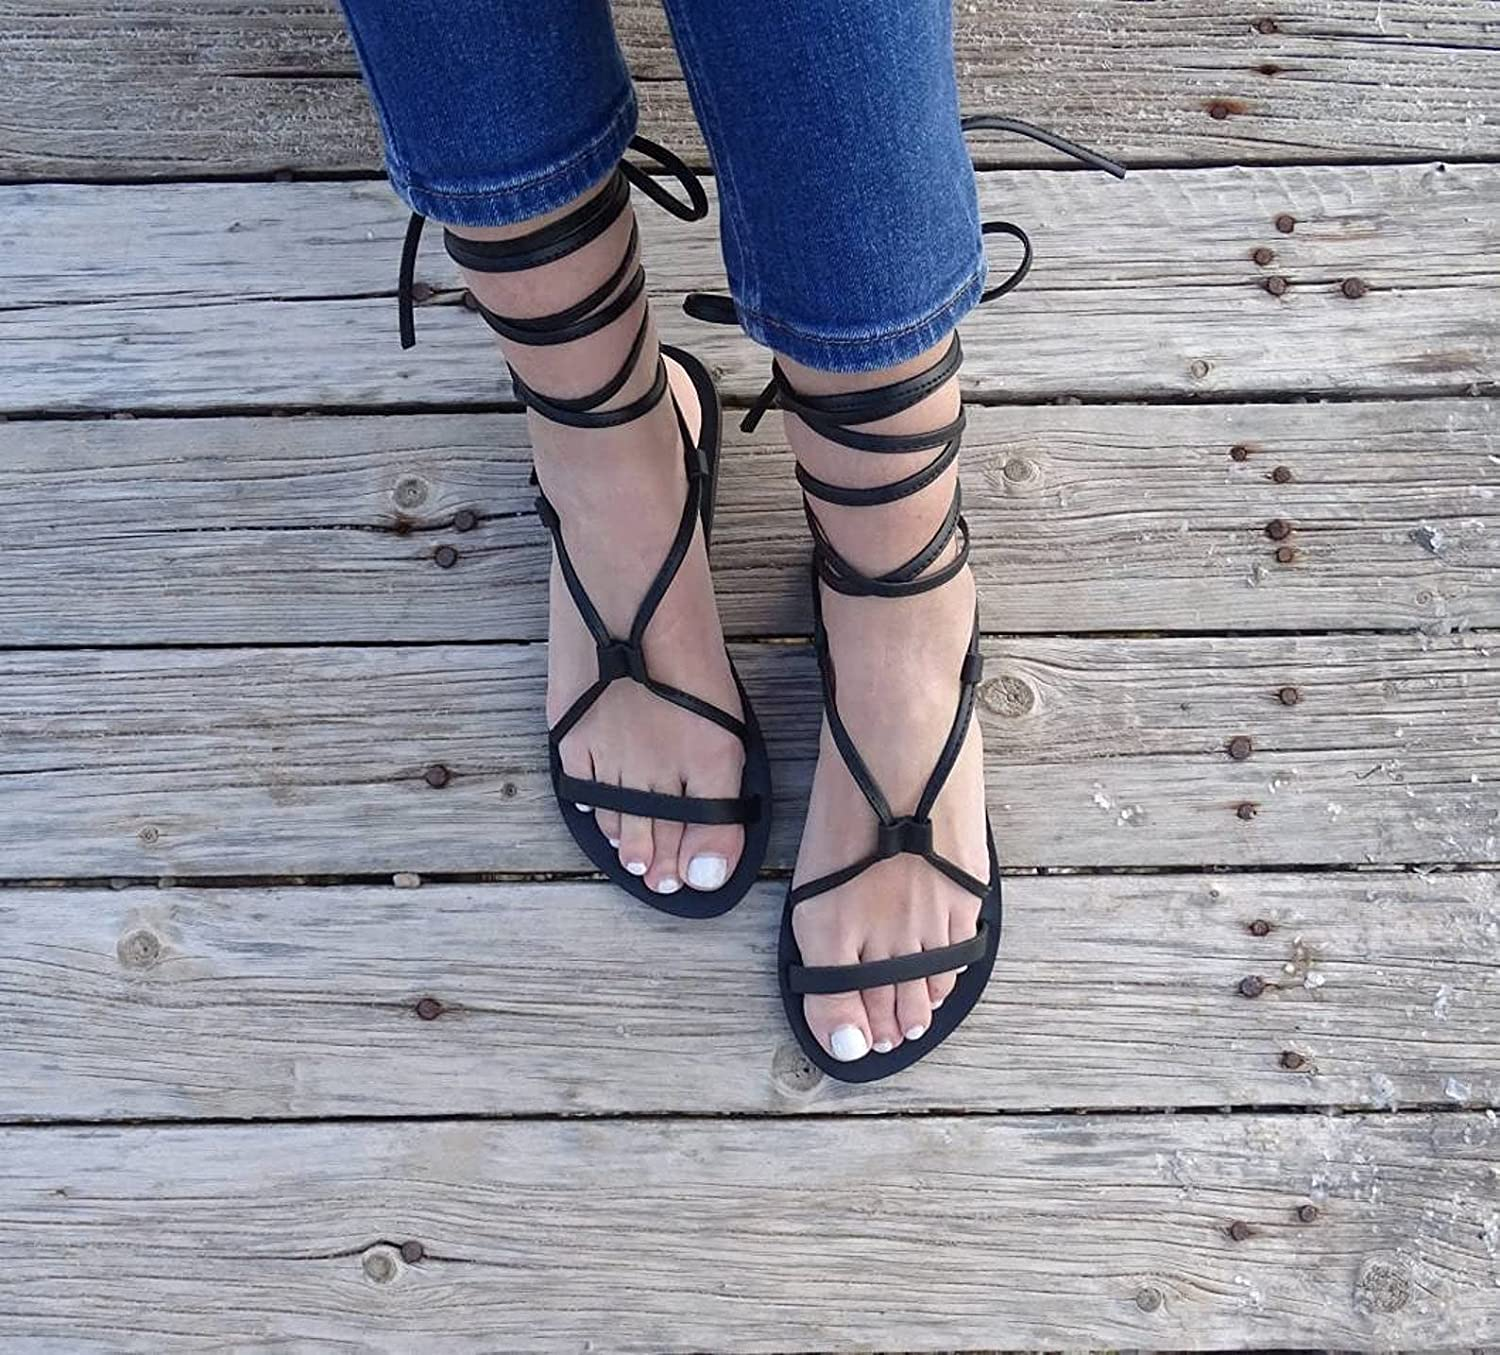 Black Leather Greek tie up Up Lace Sandals Over item handling Ranking integrated 1st place for sandals